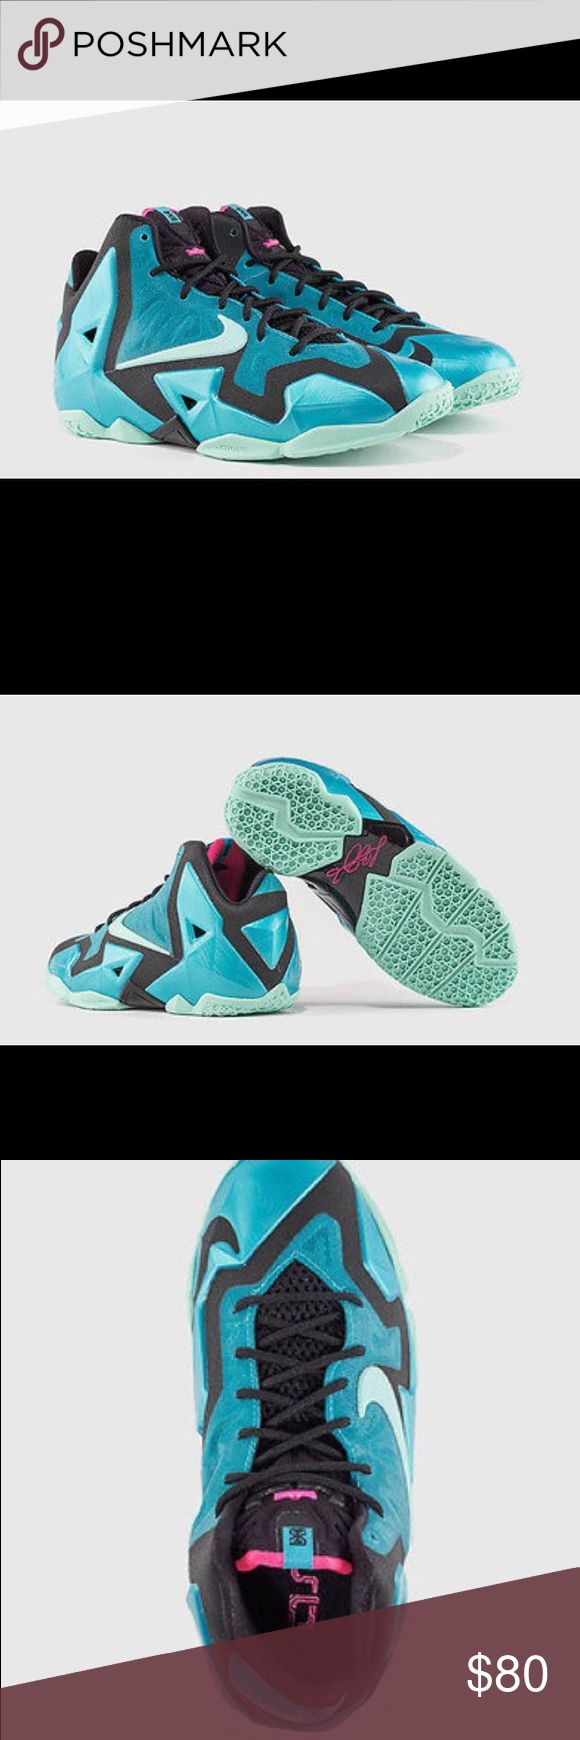 NIKE LEBRON XI SOUTH BEACH YOUTH BASKETBALL SHOES Bought these new. My daughter put them on for her first game and got injured. New/mint condition. No wear or marks.   YOUTH SIZE: 6 Y / WOMEN'S SIZE US 7.5  COLOR:  Sport Turq/Medium Mint-Black  NIKE STYLE: 01/15/14 621712-303 02/18/14  MSRP: $140   The light, strong LeBron XIII Big Kids' Basketball Shoe features a larger-than-ever Nike Zoom Air unit for incredible cushioning and maximum explosiveness, while durable Hyperposite material…